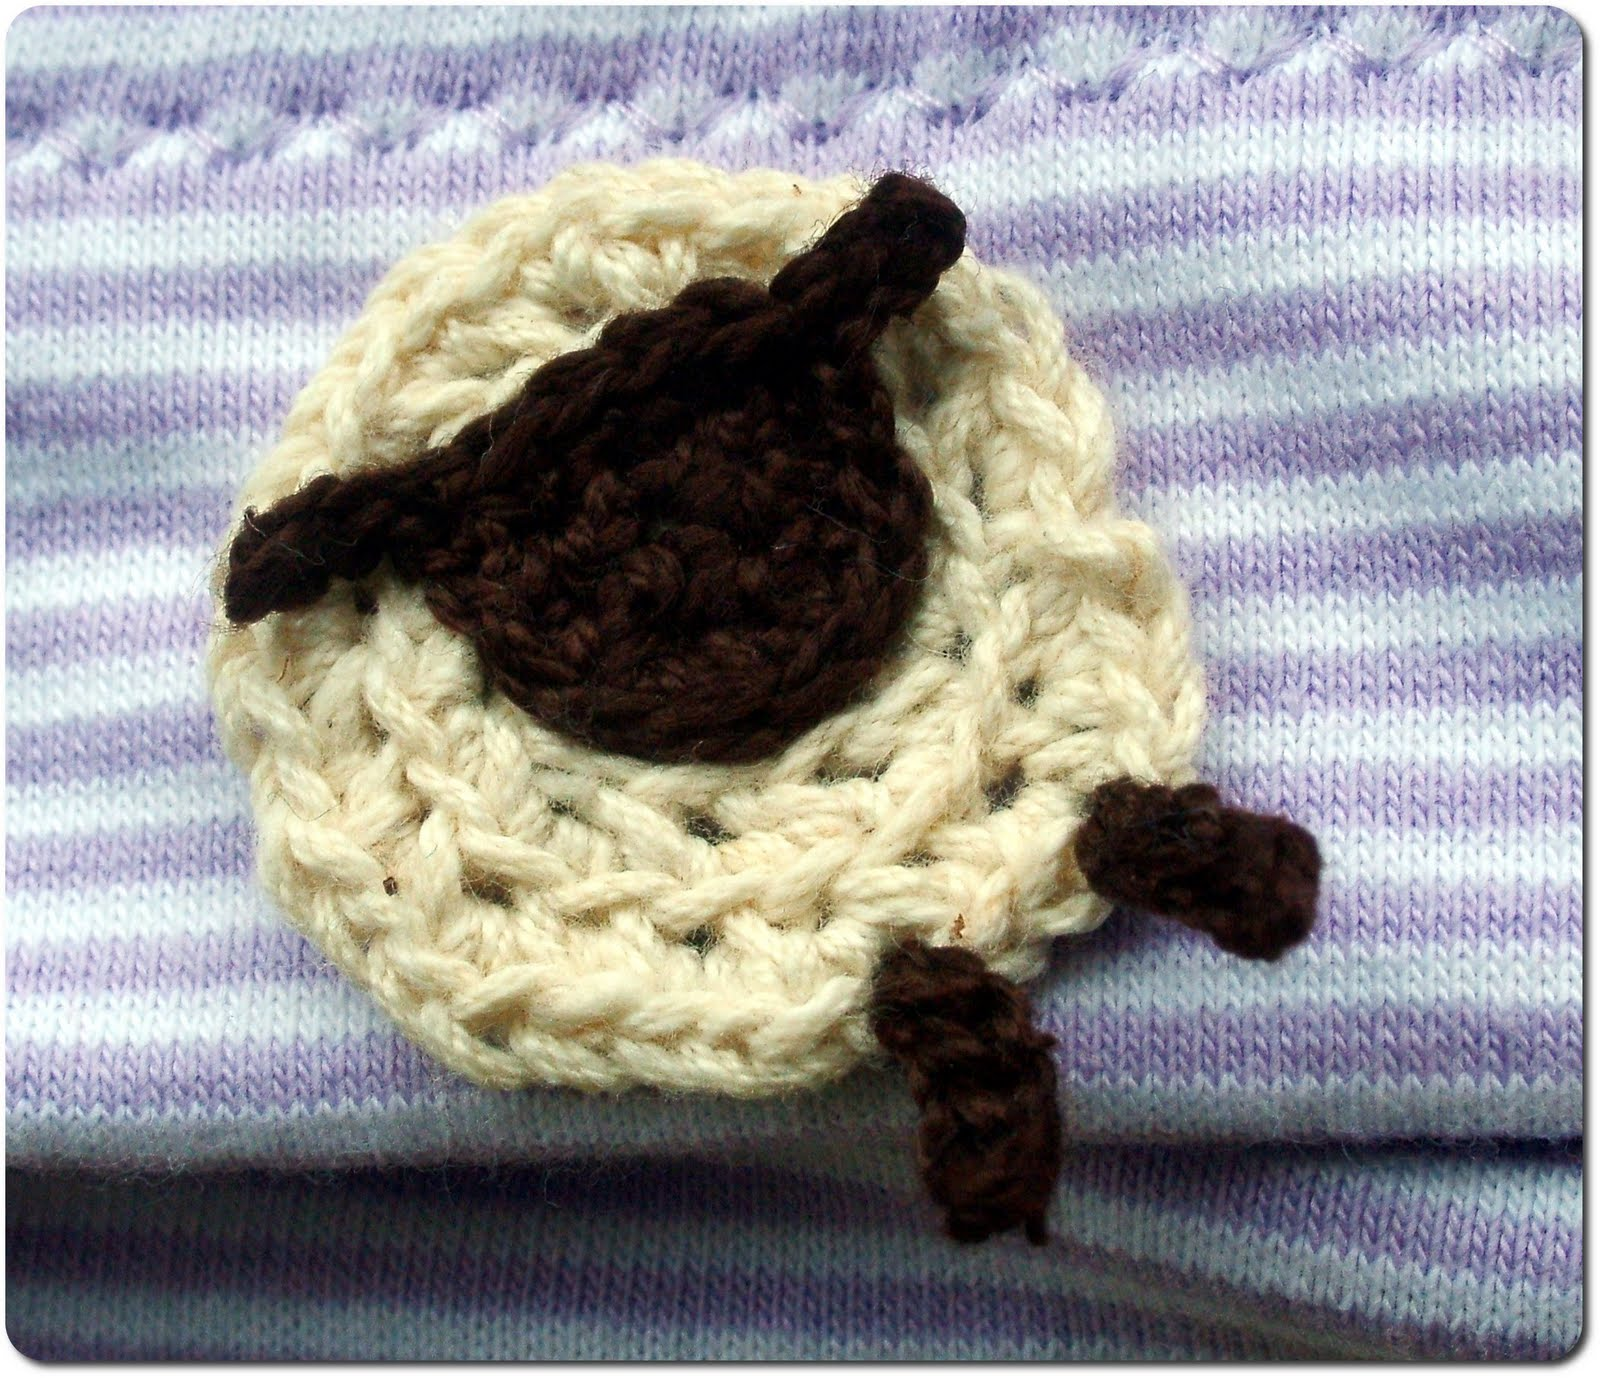 Crochet Pattern For A Lamb Hat : Muffins and More: Baby hat with crocheted sheep applique